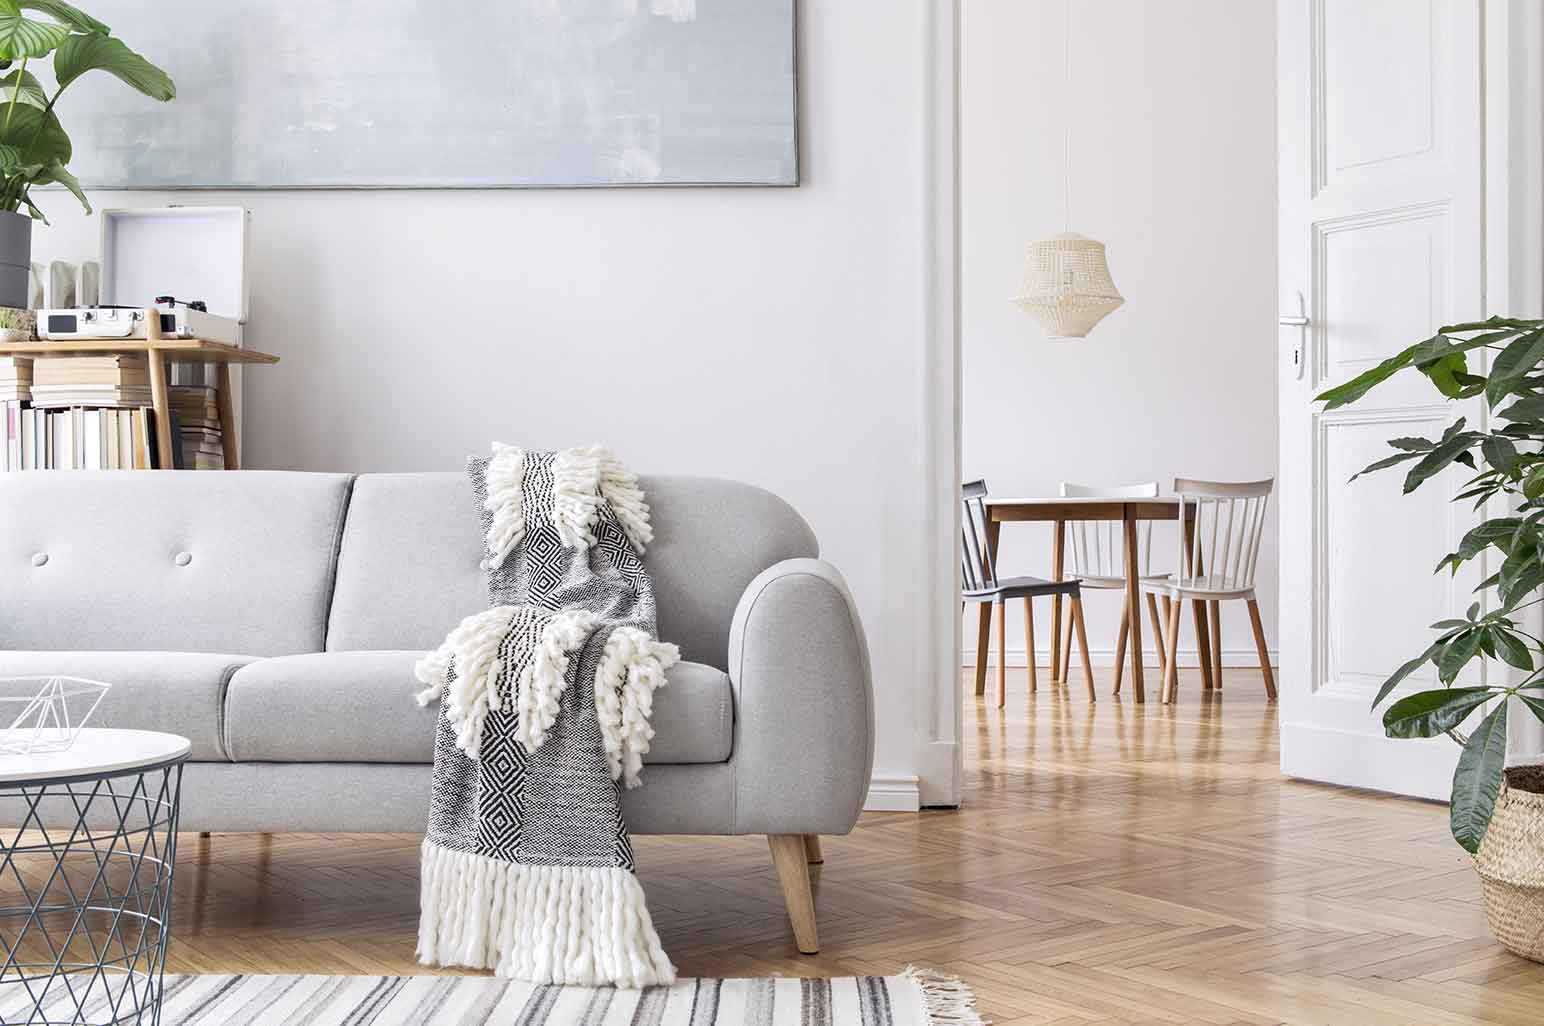 Clean - How to Maintain Your Home When You First Move In